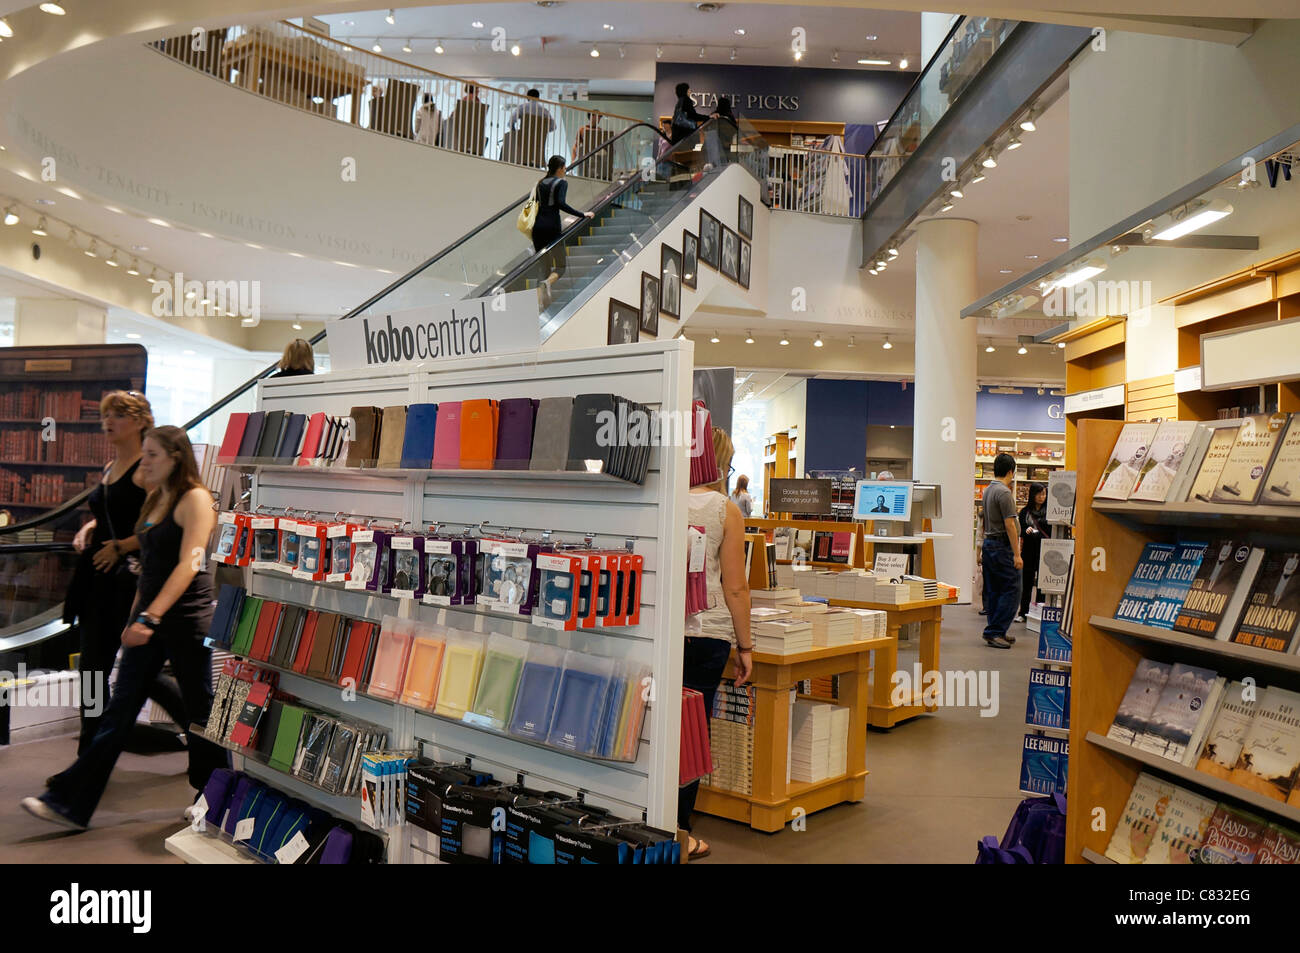 Inside a Bookstore - Stock Image